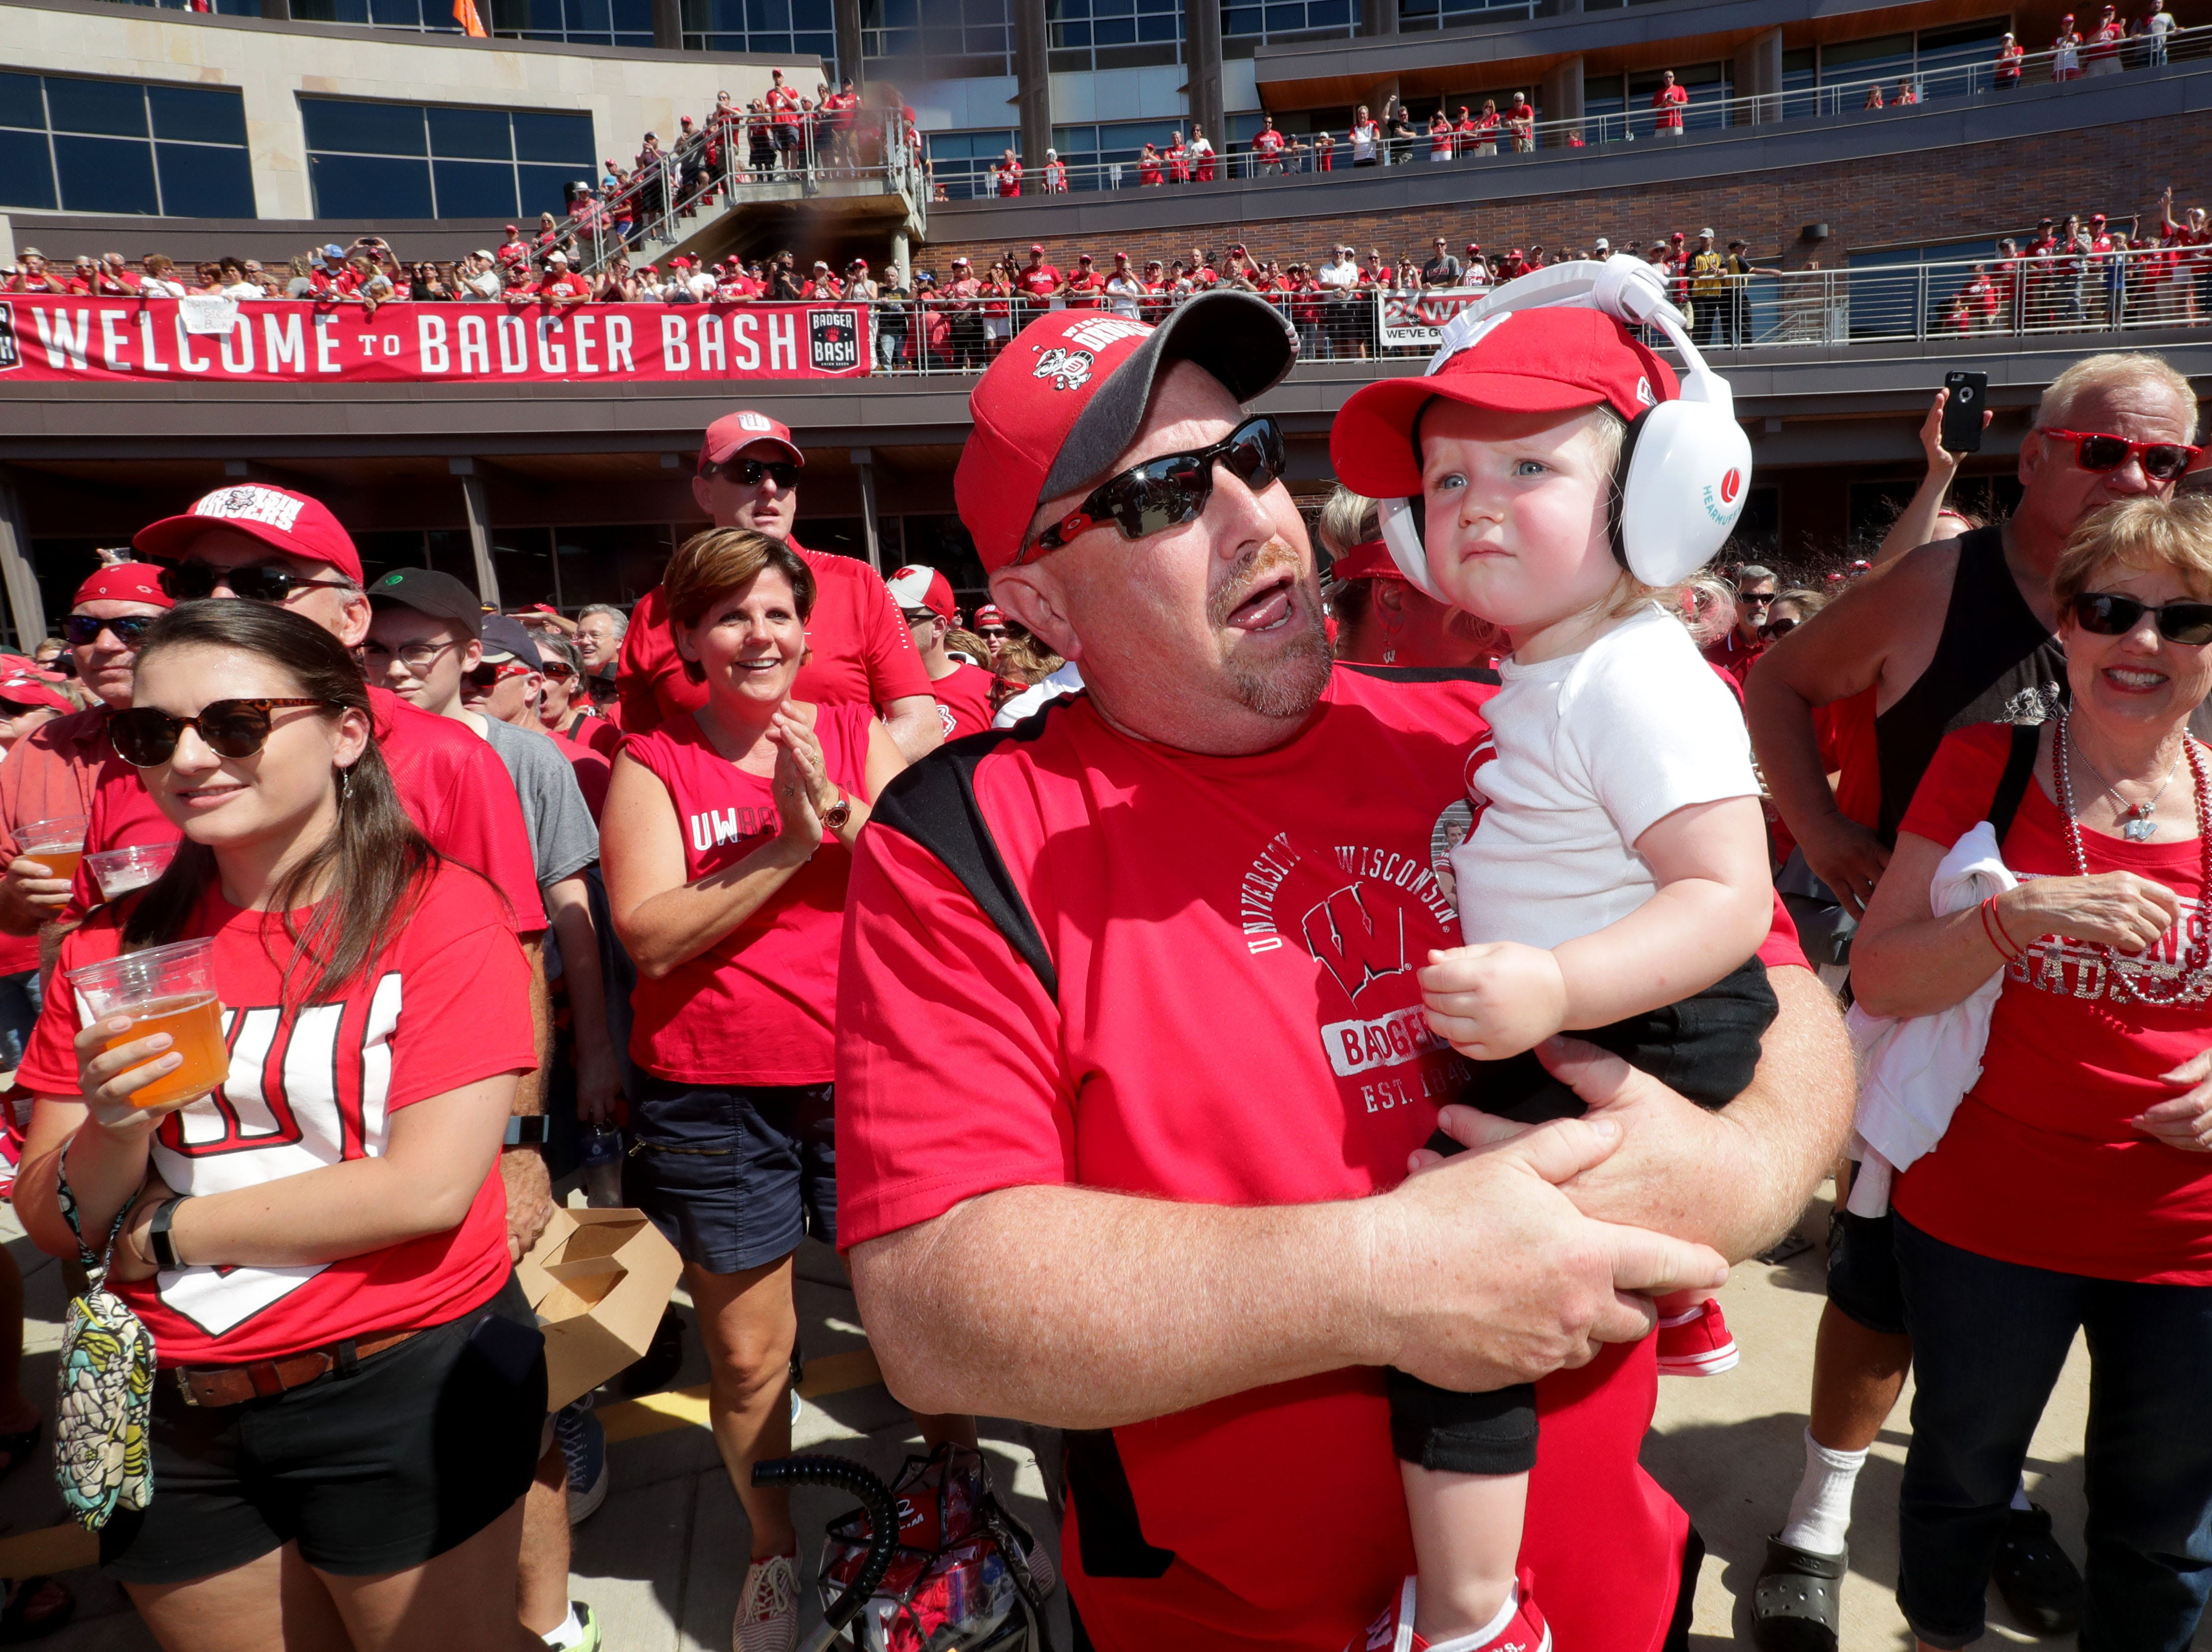 Jack Pawley, of Menomonee Falls, holds his 1-year-old granddaughter Maisie Lennon, from Madison, as the UW alumni marching band performs at Union South before the Wisconsin-BYU game at Camp Randall Stadium.